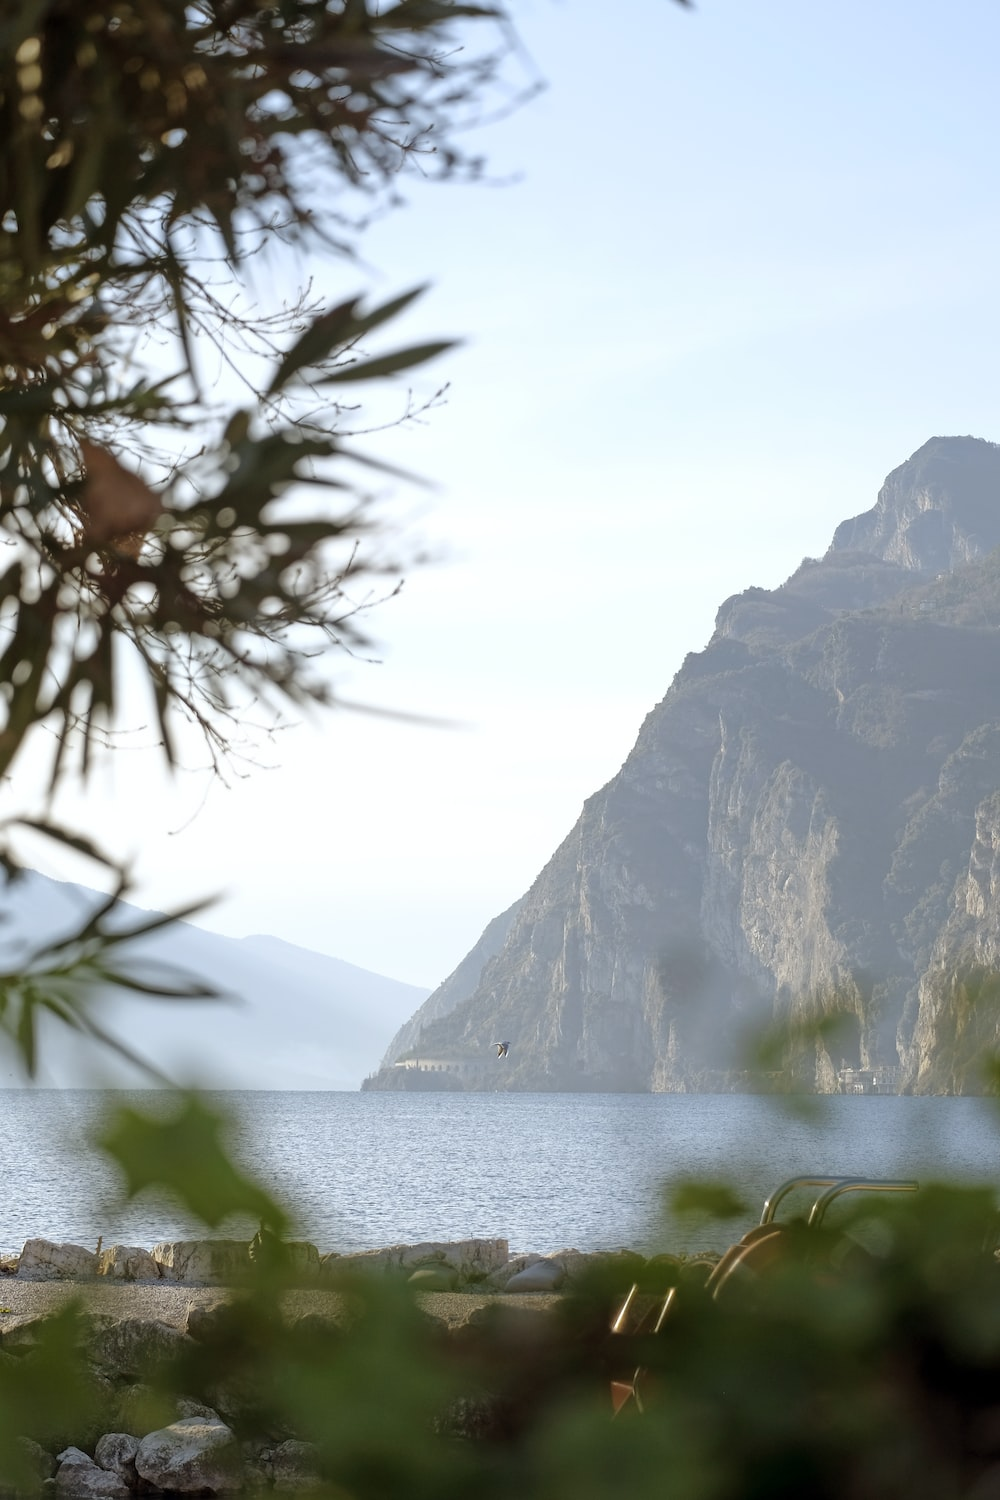 green tree near body of water and mountain during daytime